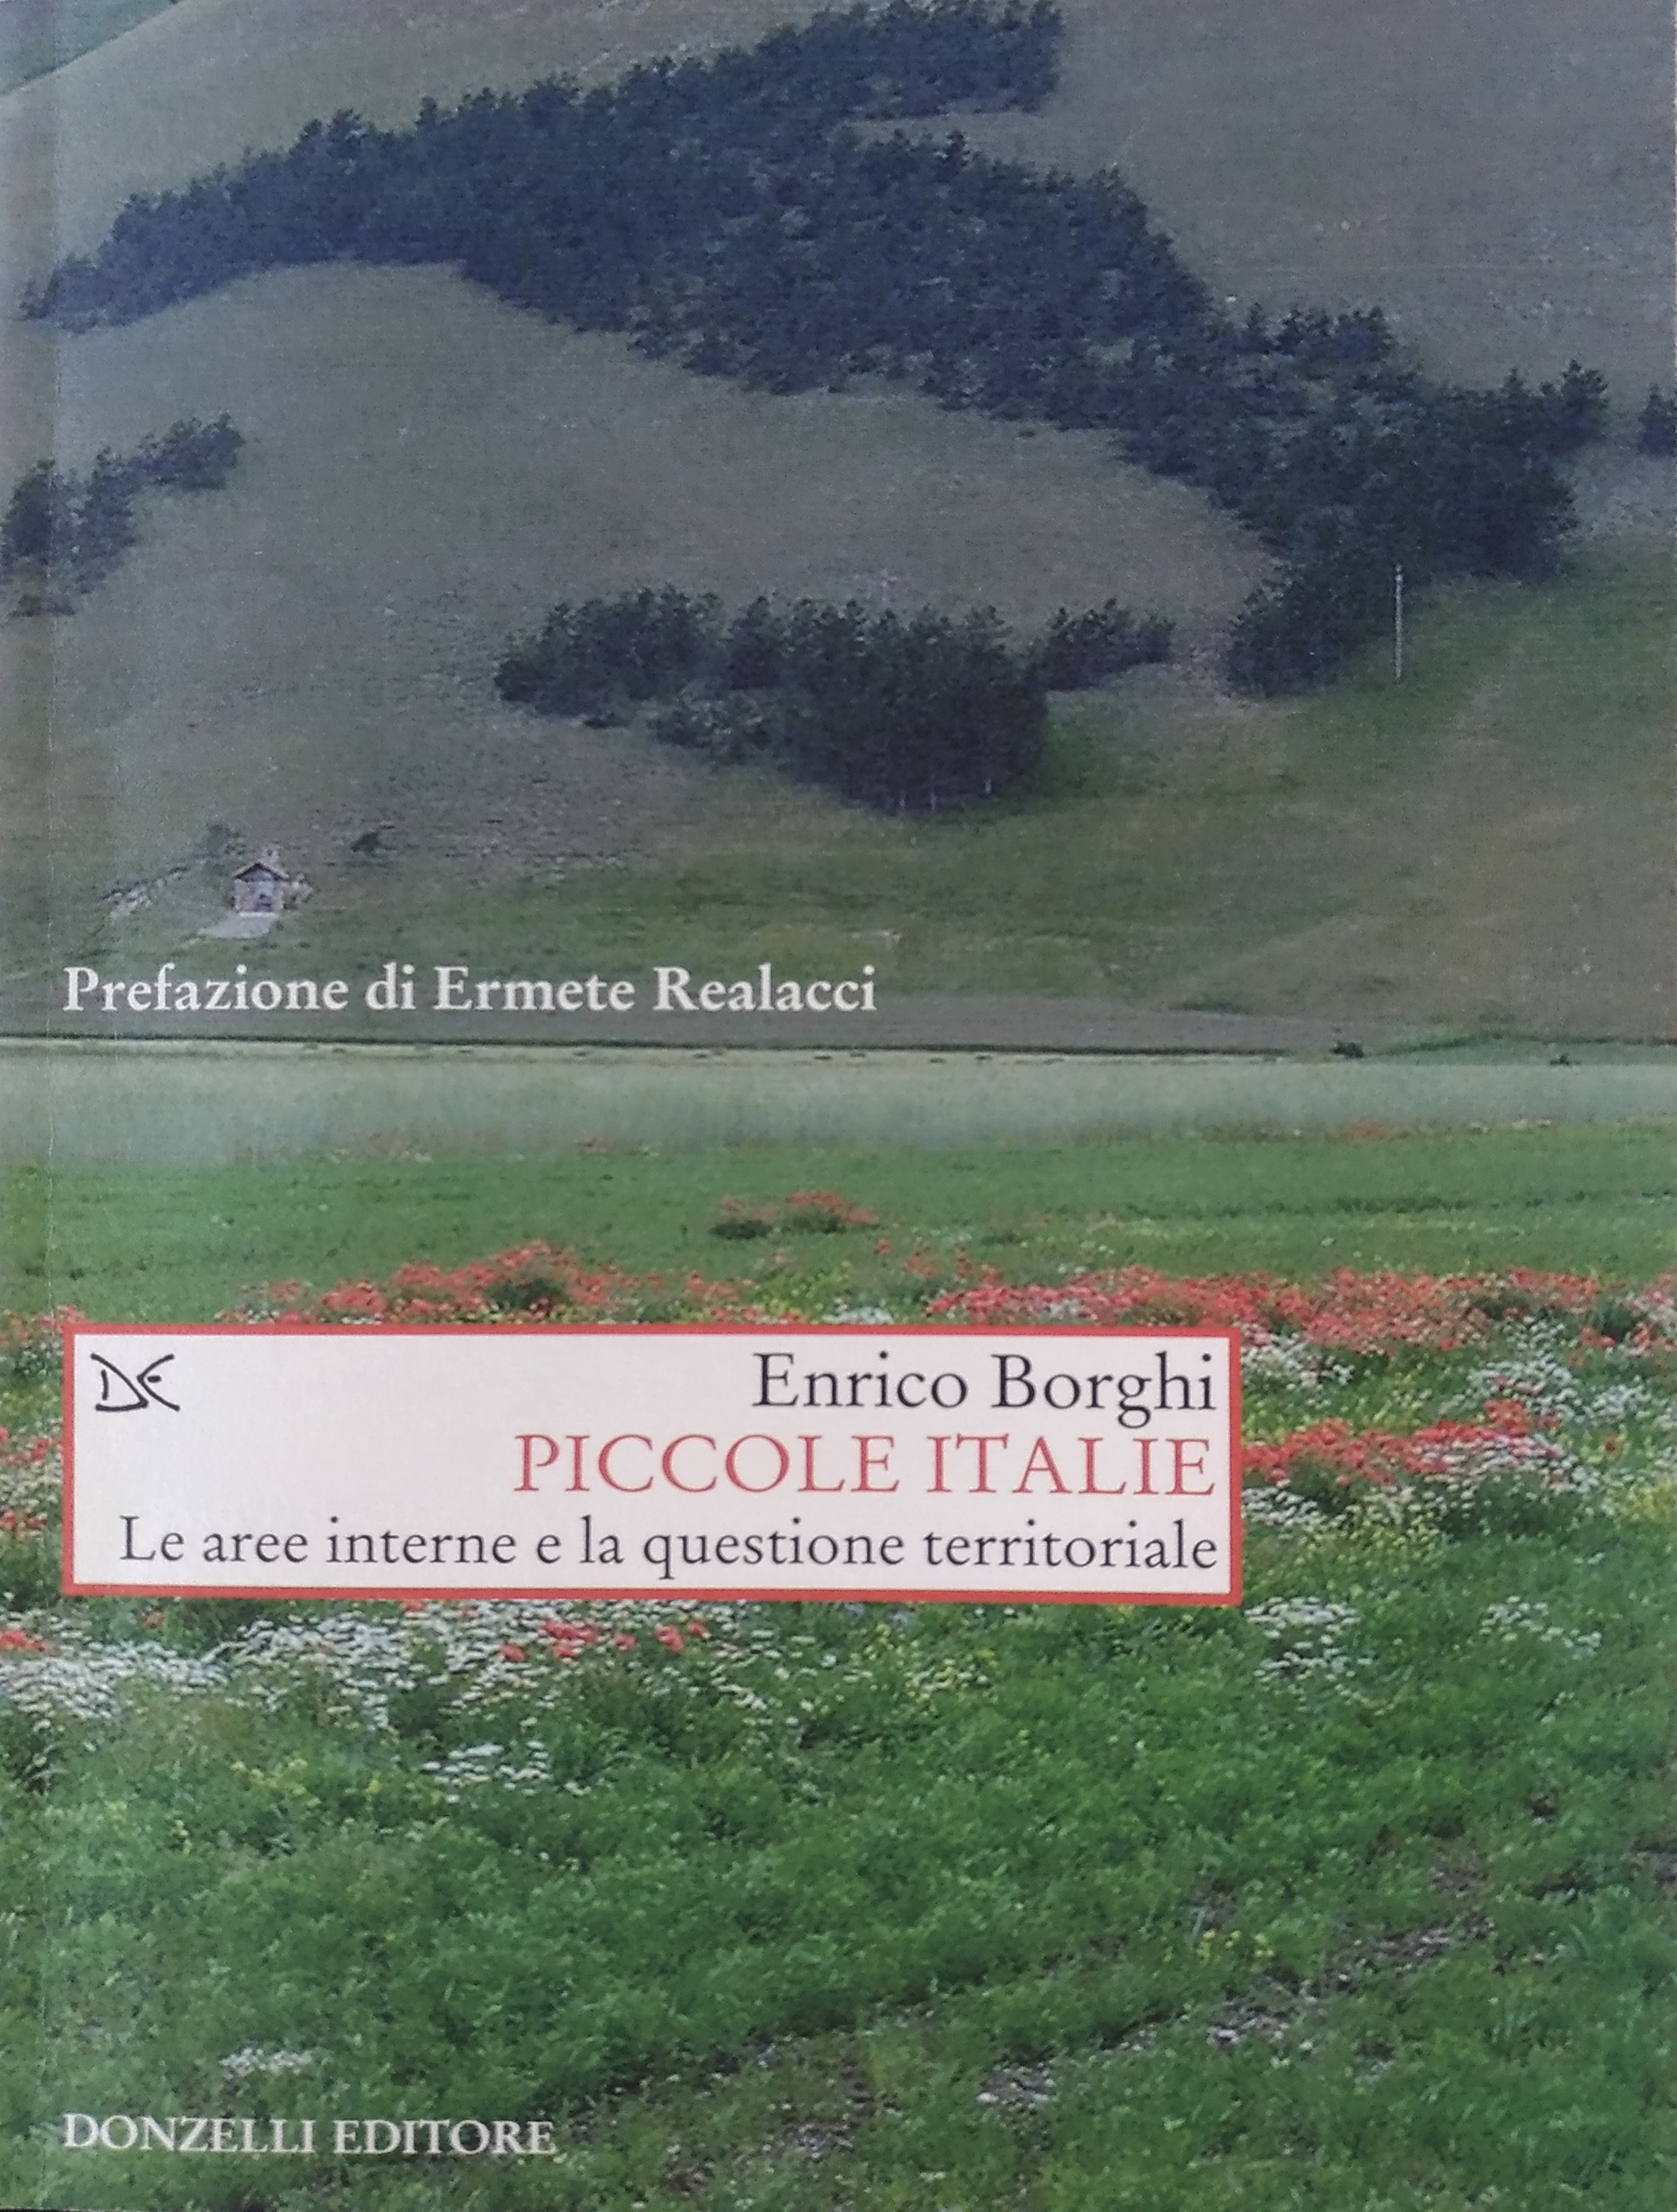 libro-piccole-italie-copia